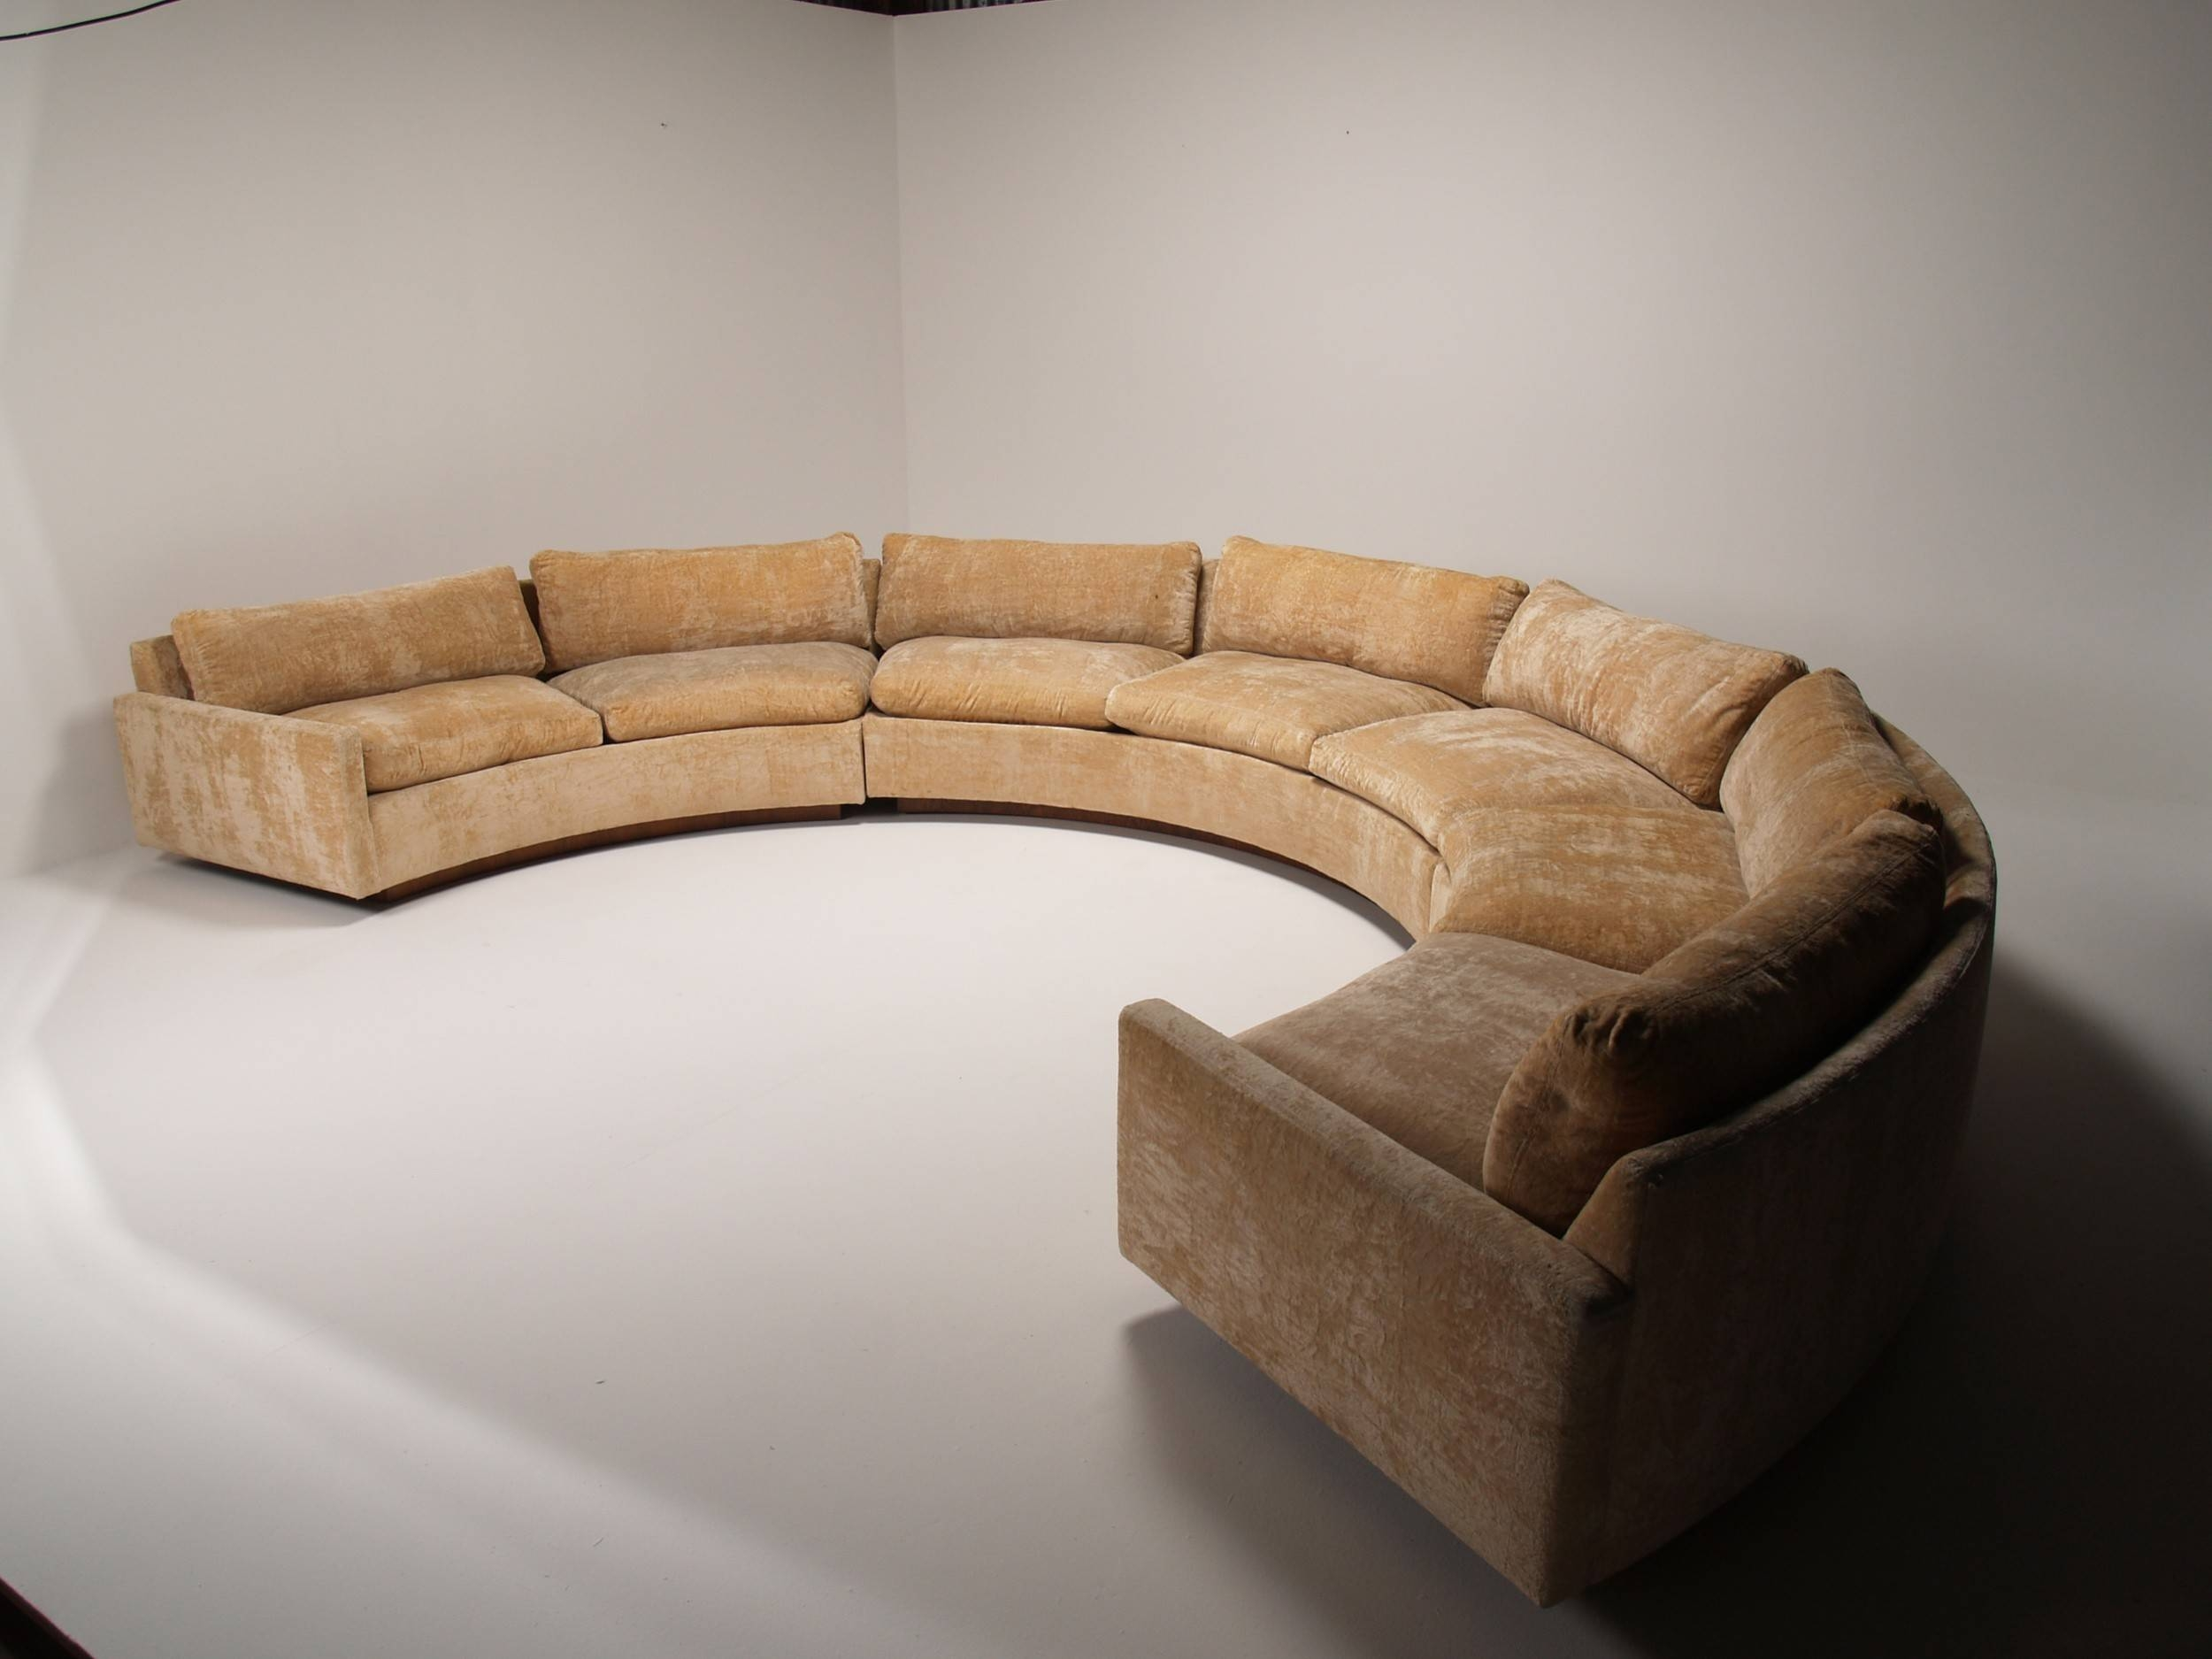 Amazing Velour Sectional Sofa 48 About Remodel 6 Piece Leather with regard to 6 Piece Leather Sectional Sofa (Image 6 of 30)